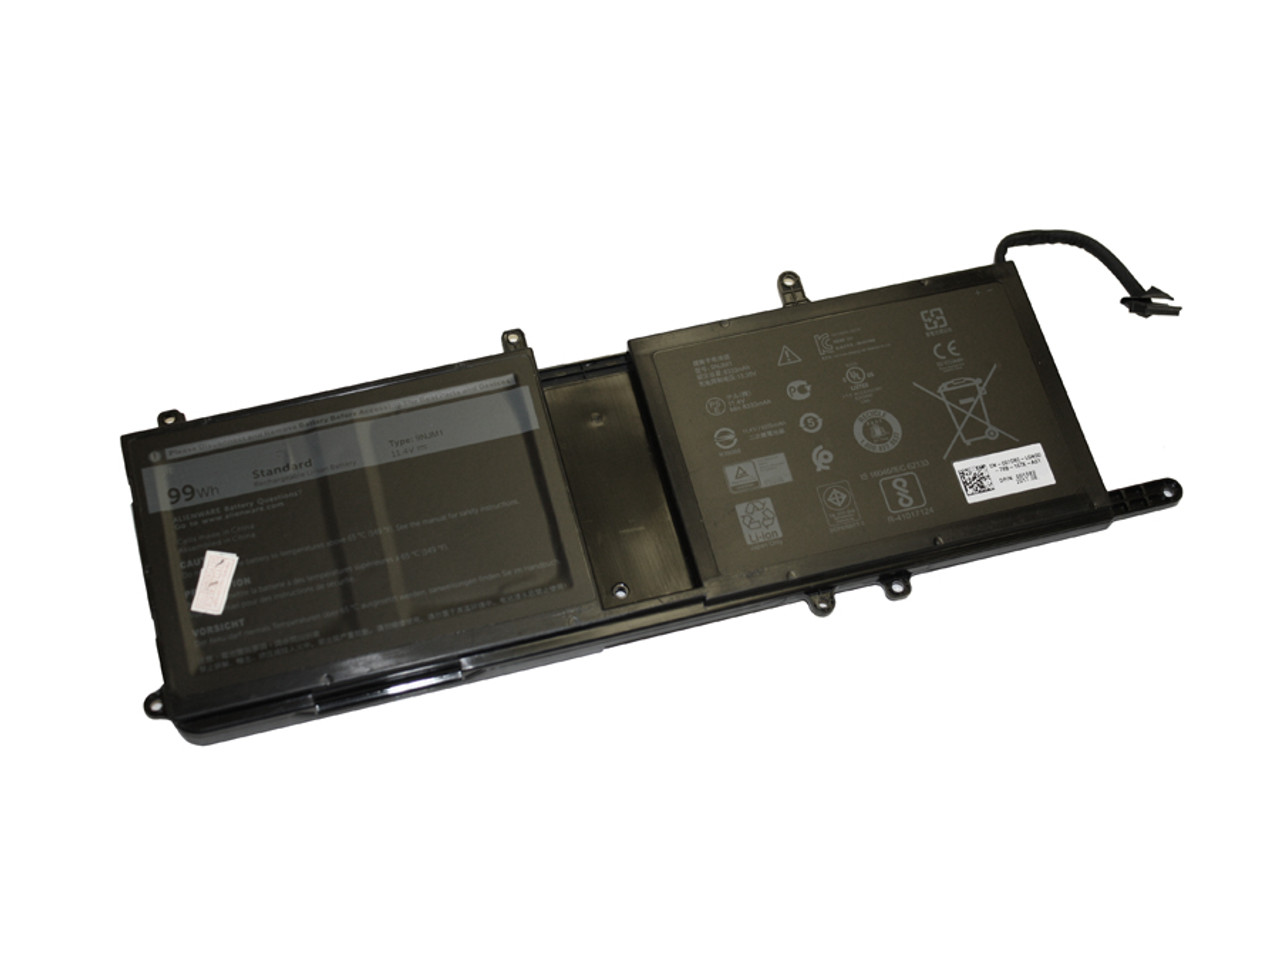 Replacement Battery for Alienware 17 R5, 15 R4, 17 R4, 15 R3